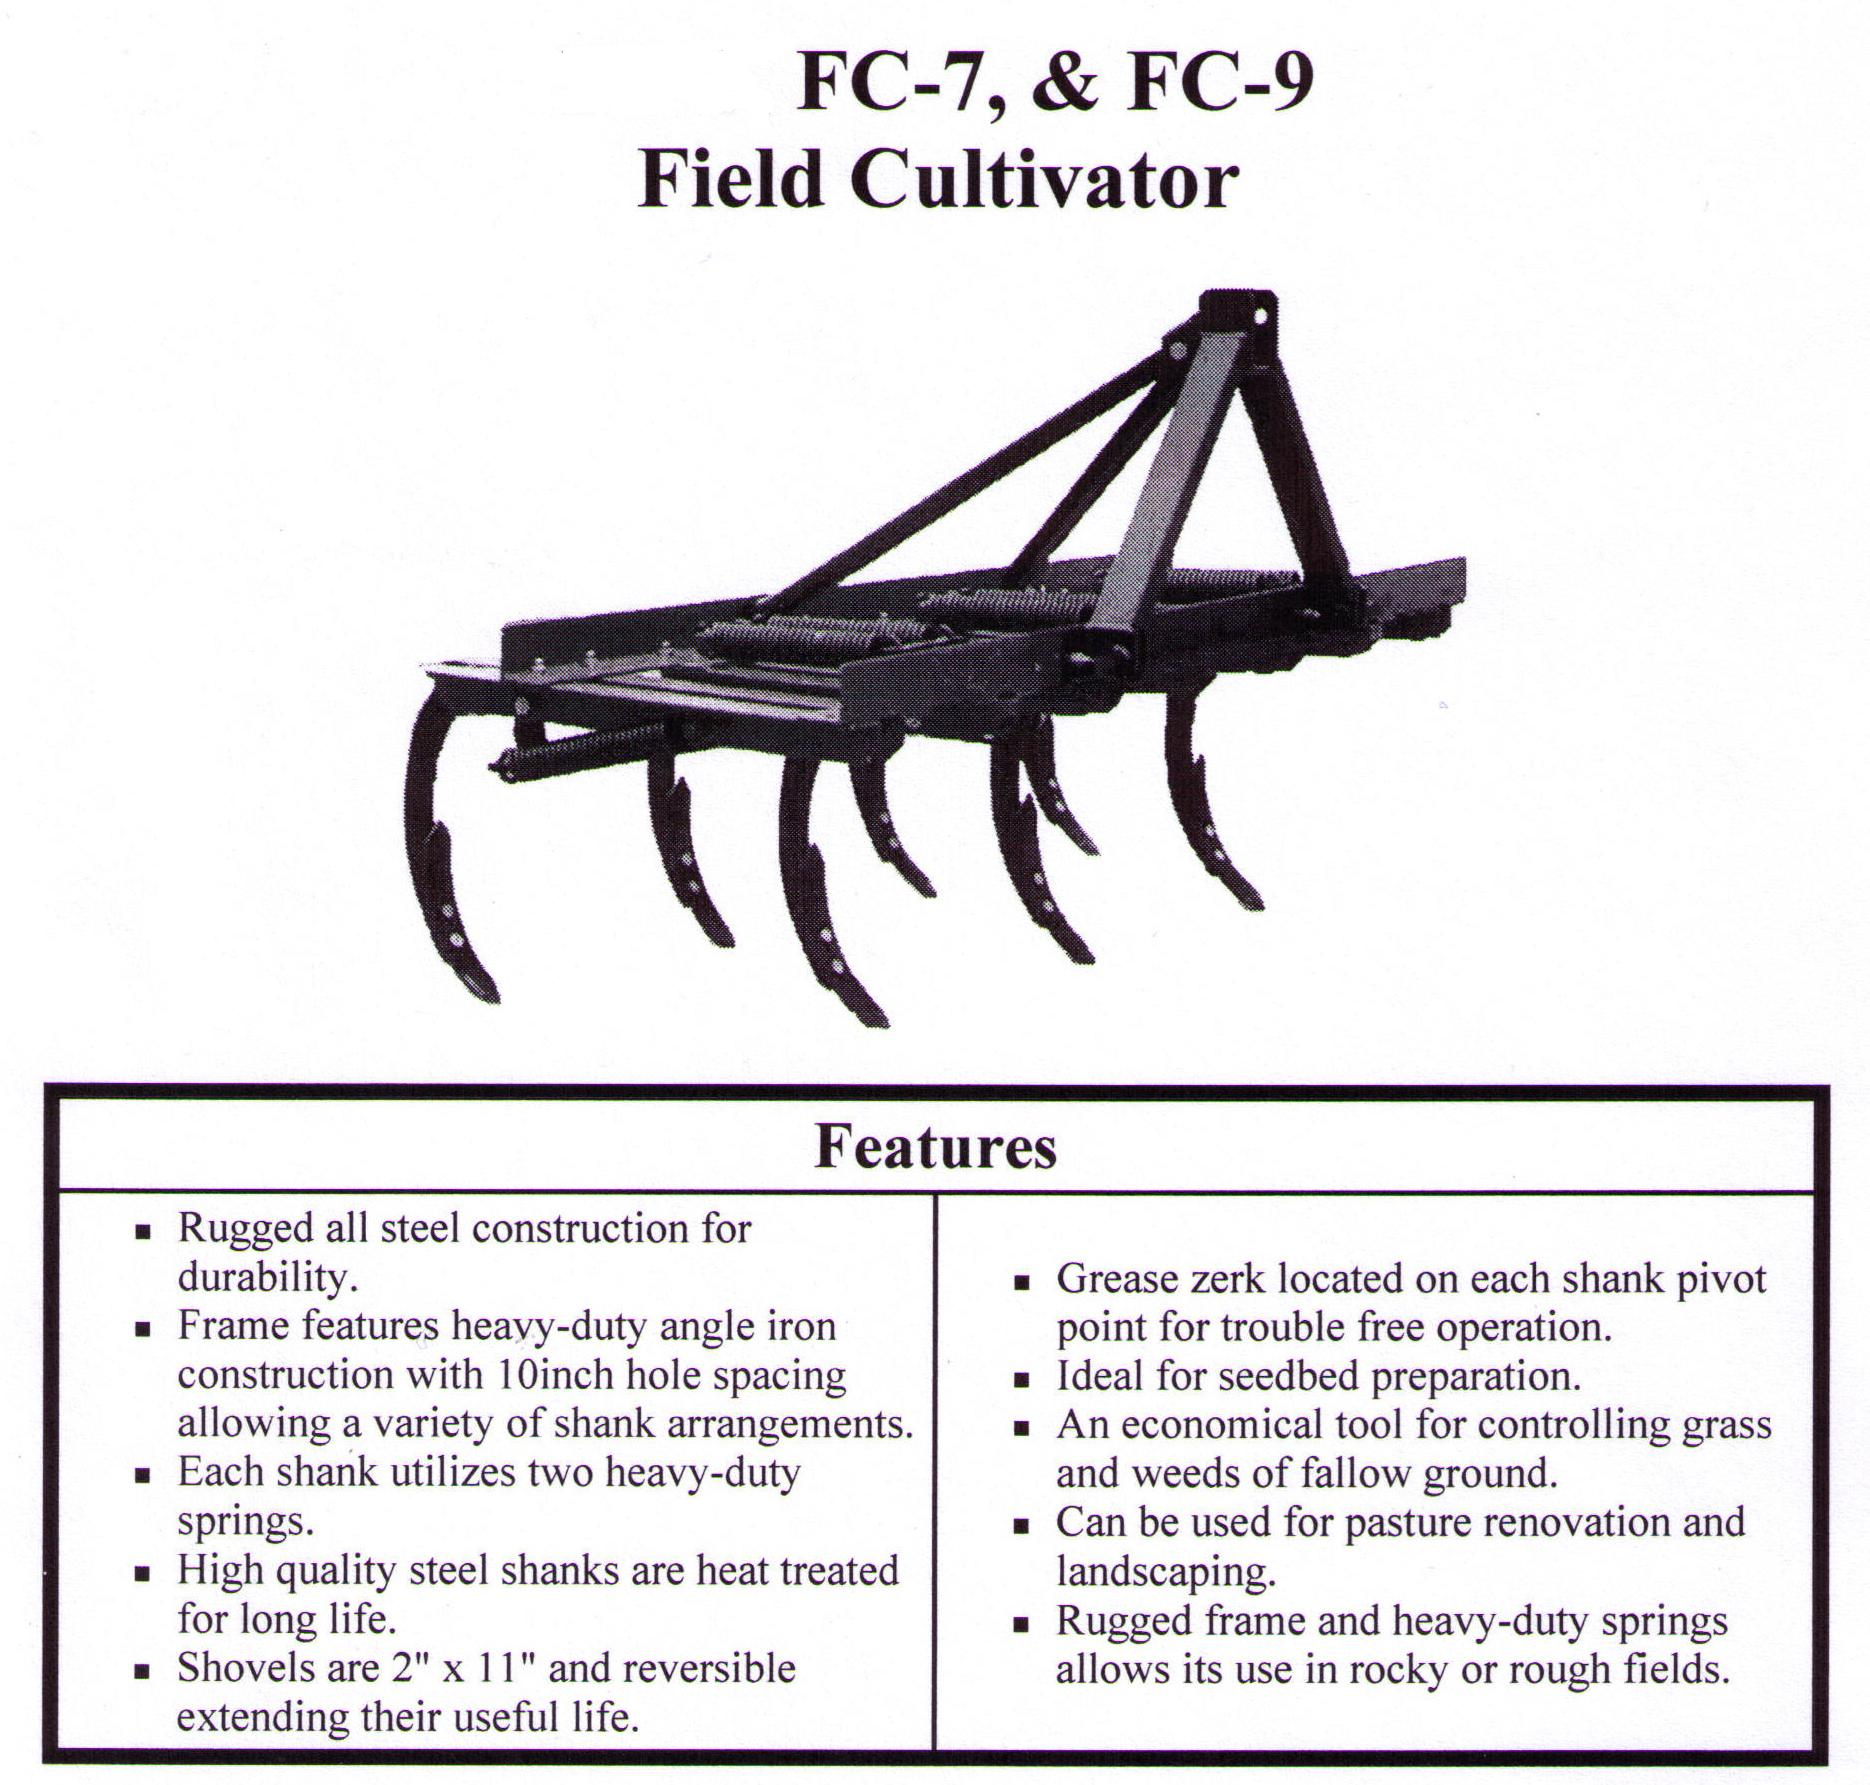 Field Cultivator Features